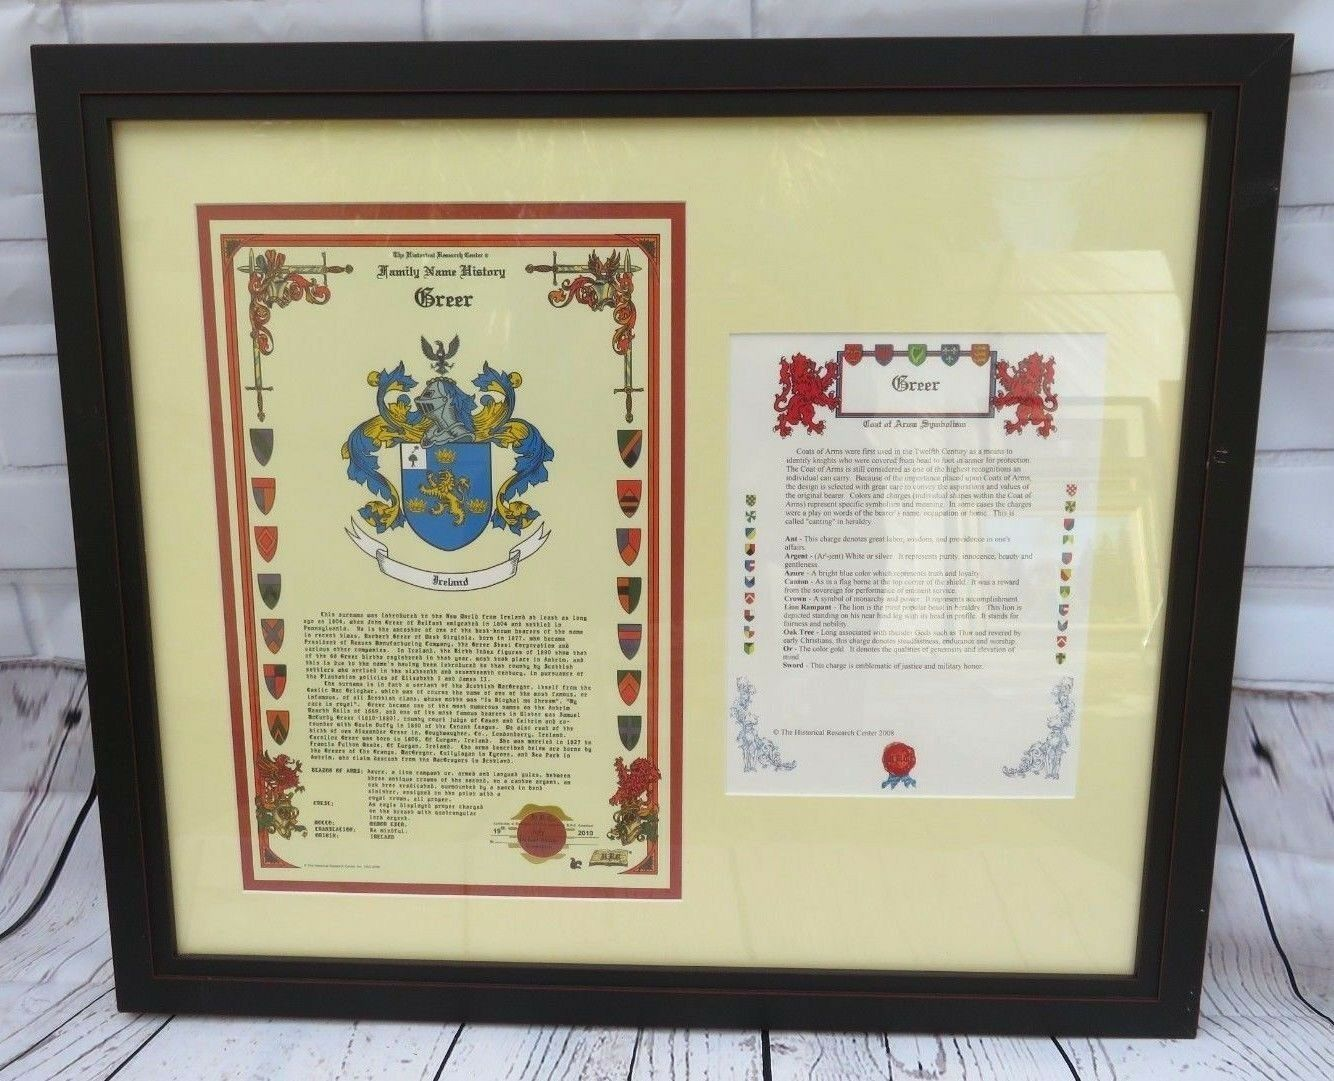 Primary image for CREER FAMILY NAME HISTORY CREST COAT OF ARMS HISTORICAL RESEARCH CENTER FRAME